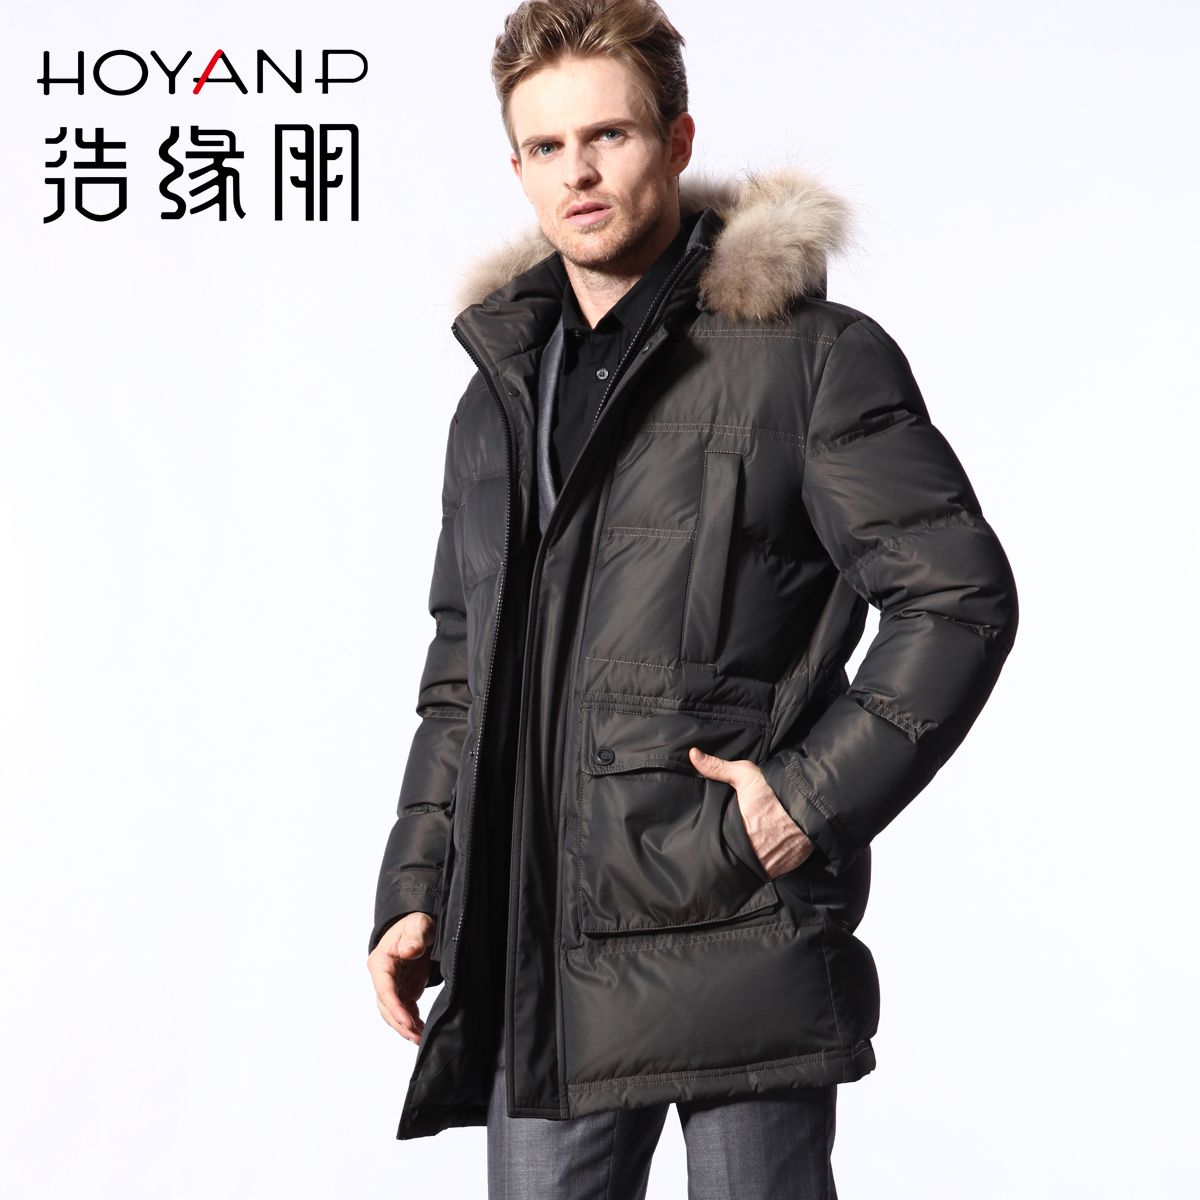 $413.75 - Mens Fur Coats Solid Zipper Fur Collar Pockets Duck Down ...